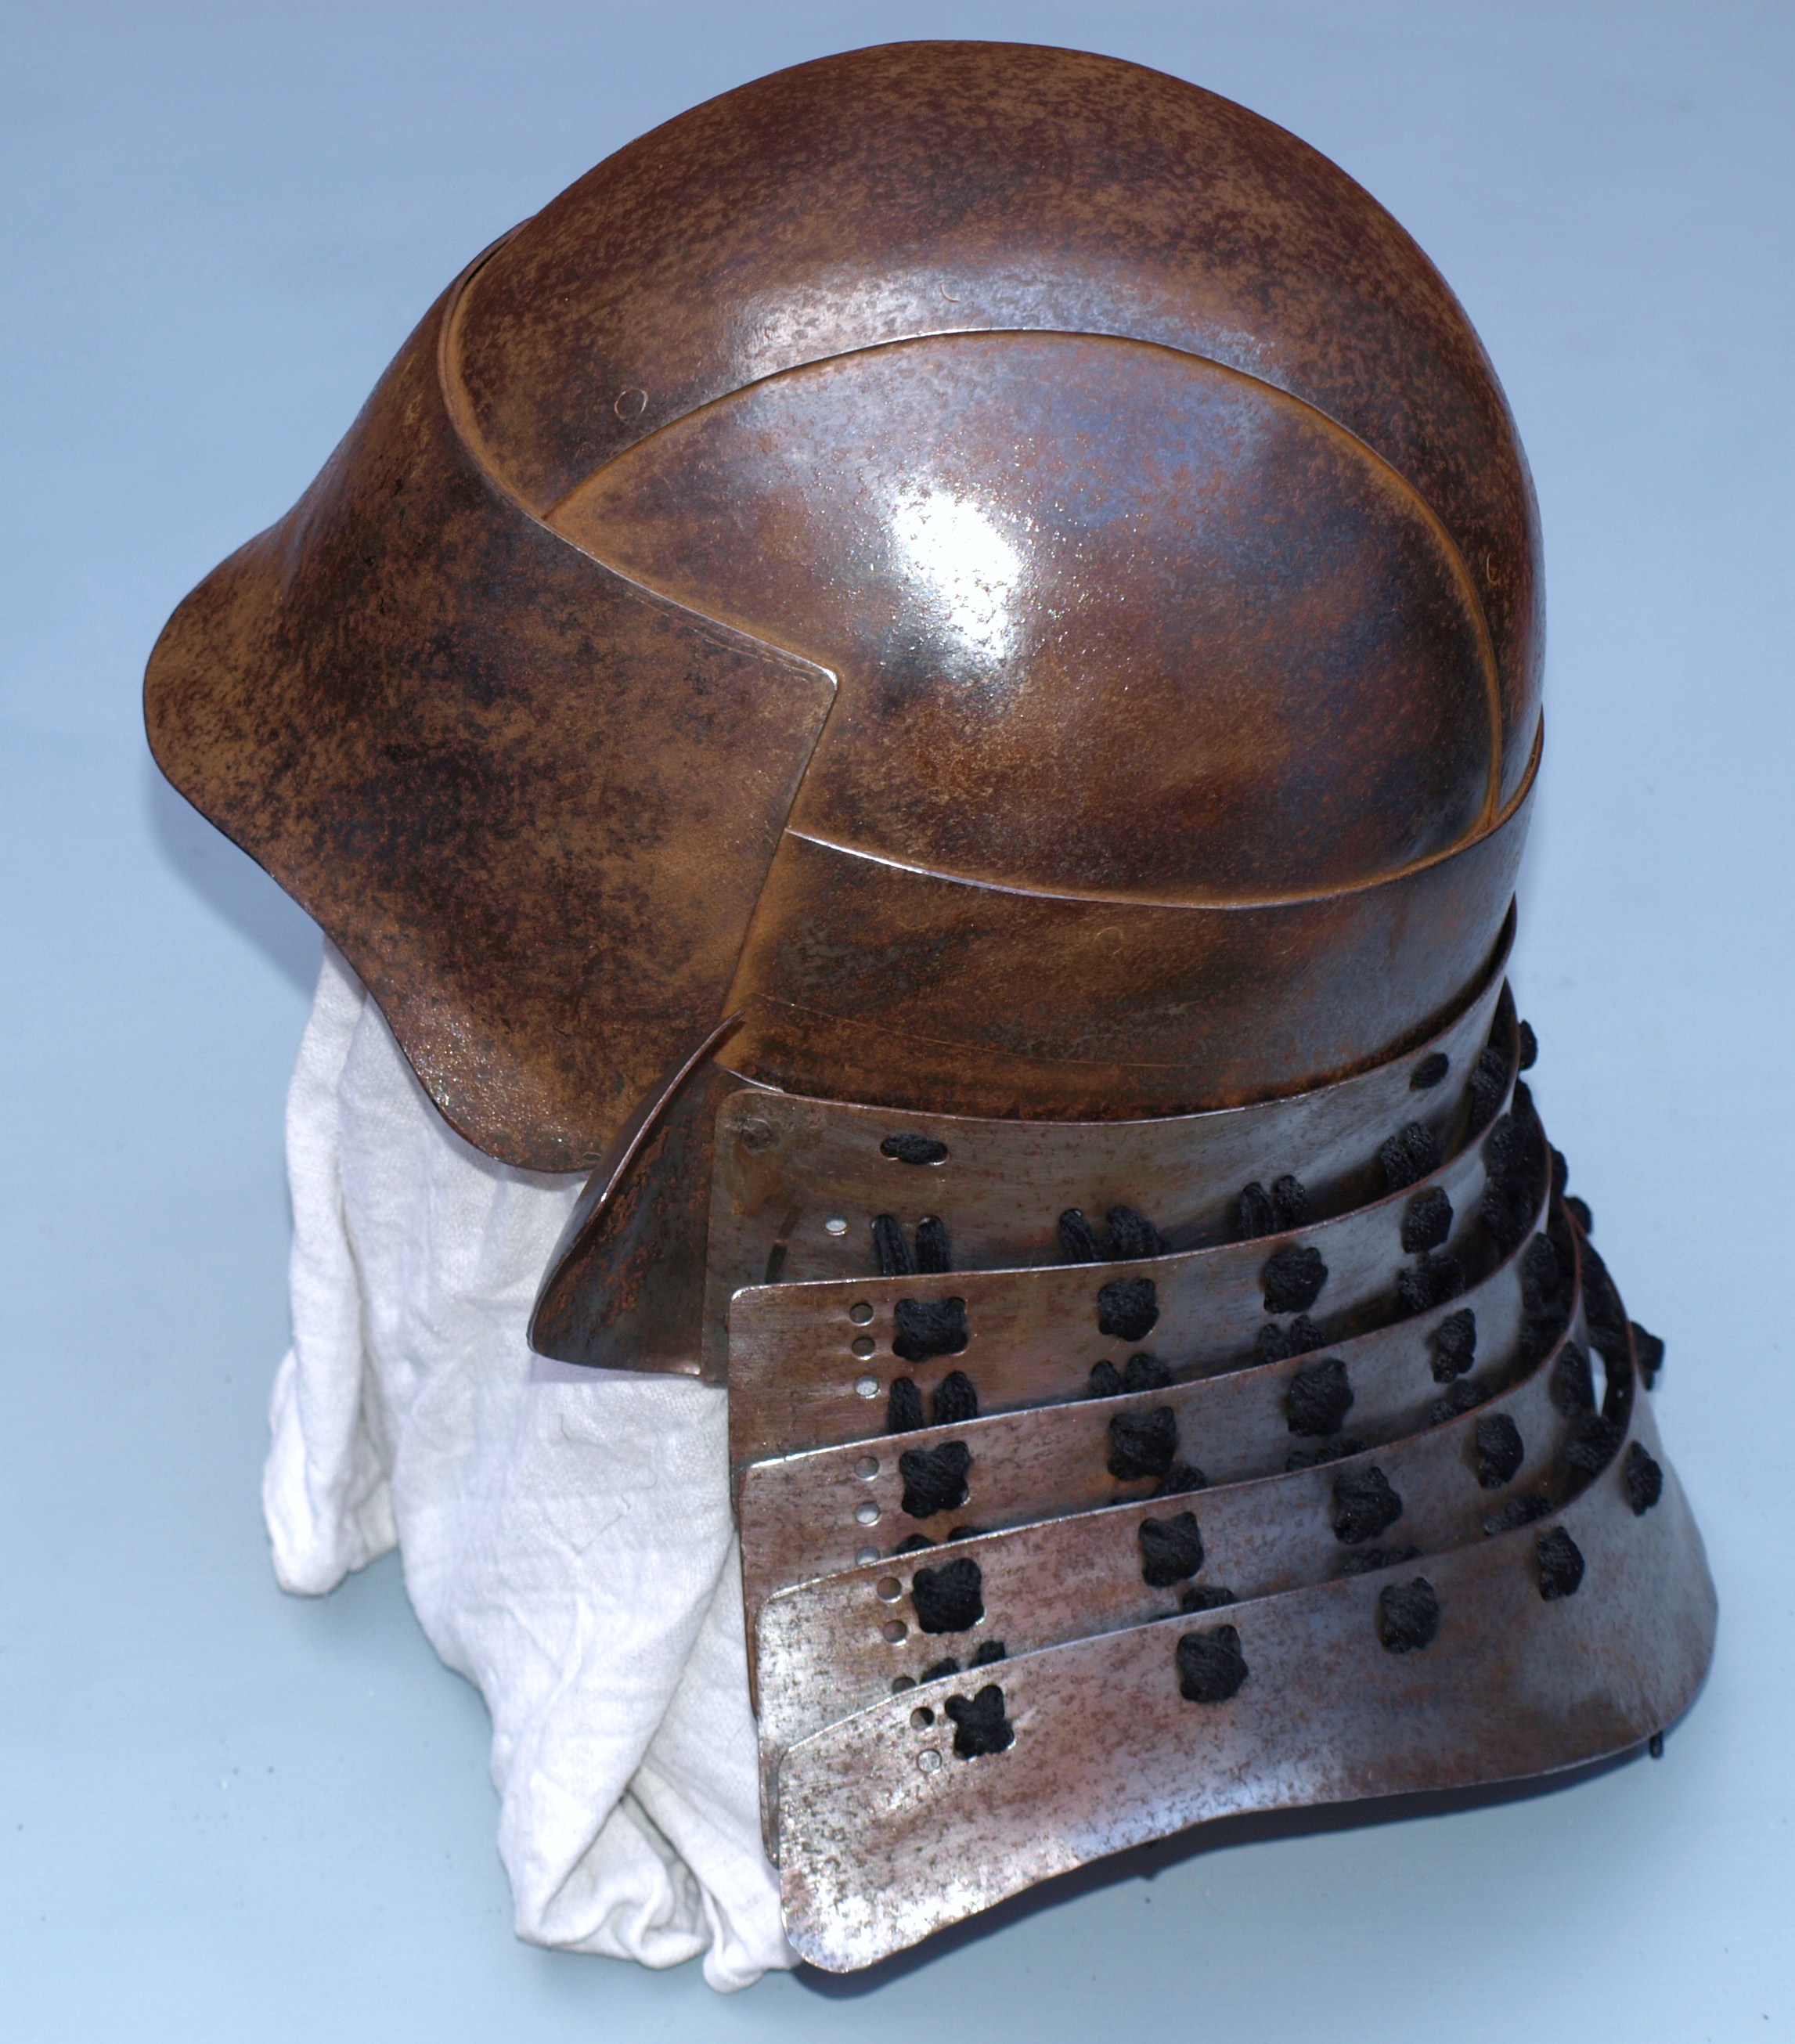 Samurai helmet reproduction